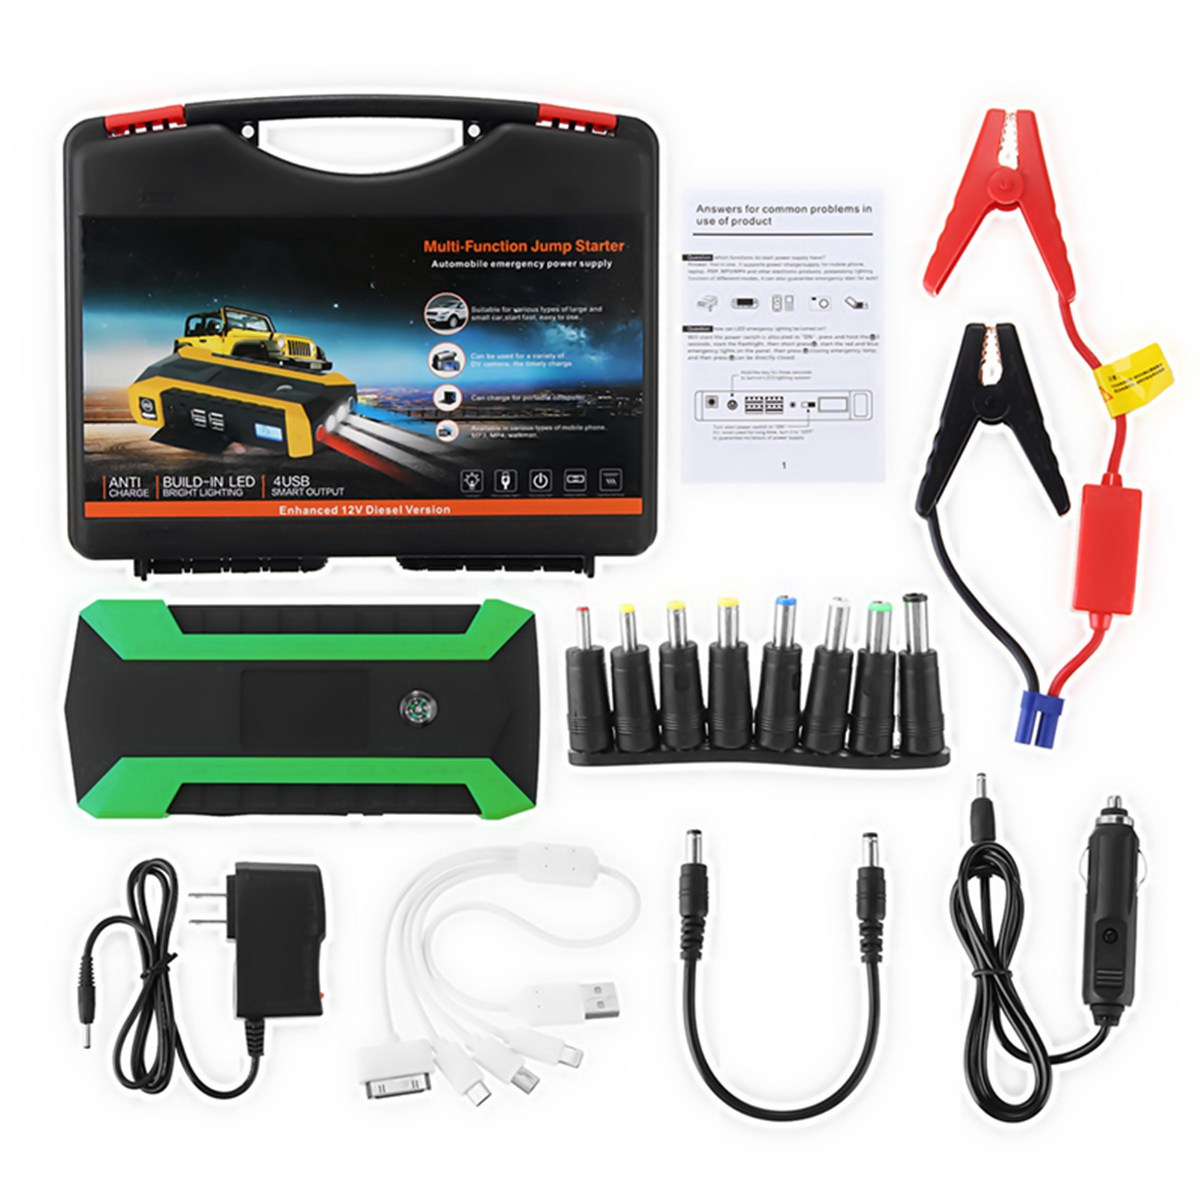 Car Jump Starter 89800mAh 12V 4USB Portable Car Battery Booster Charger Booster Power Bank Starting Device Car Starter 600A multifunction jump starter 89800mah 12v 4usb 600a portable car battery booster charger booster power bank starting device